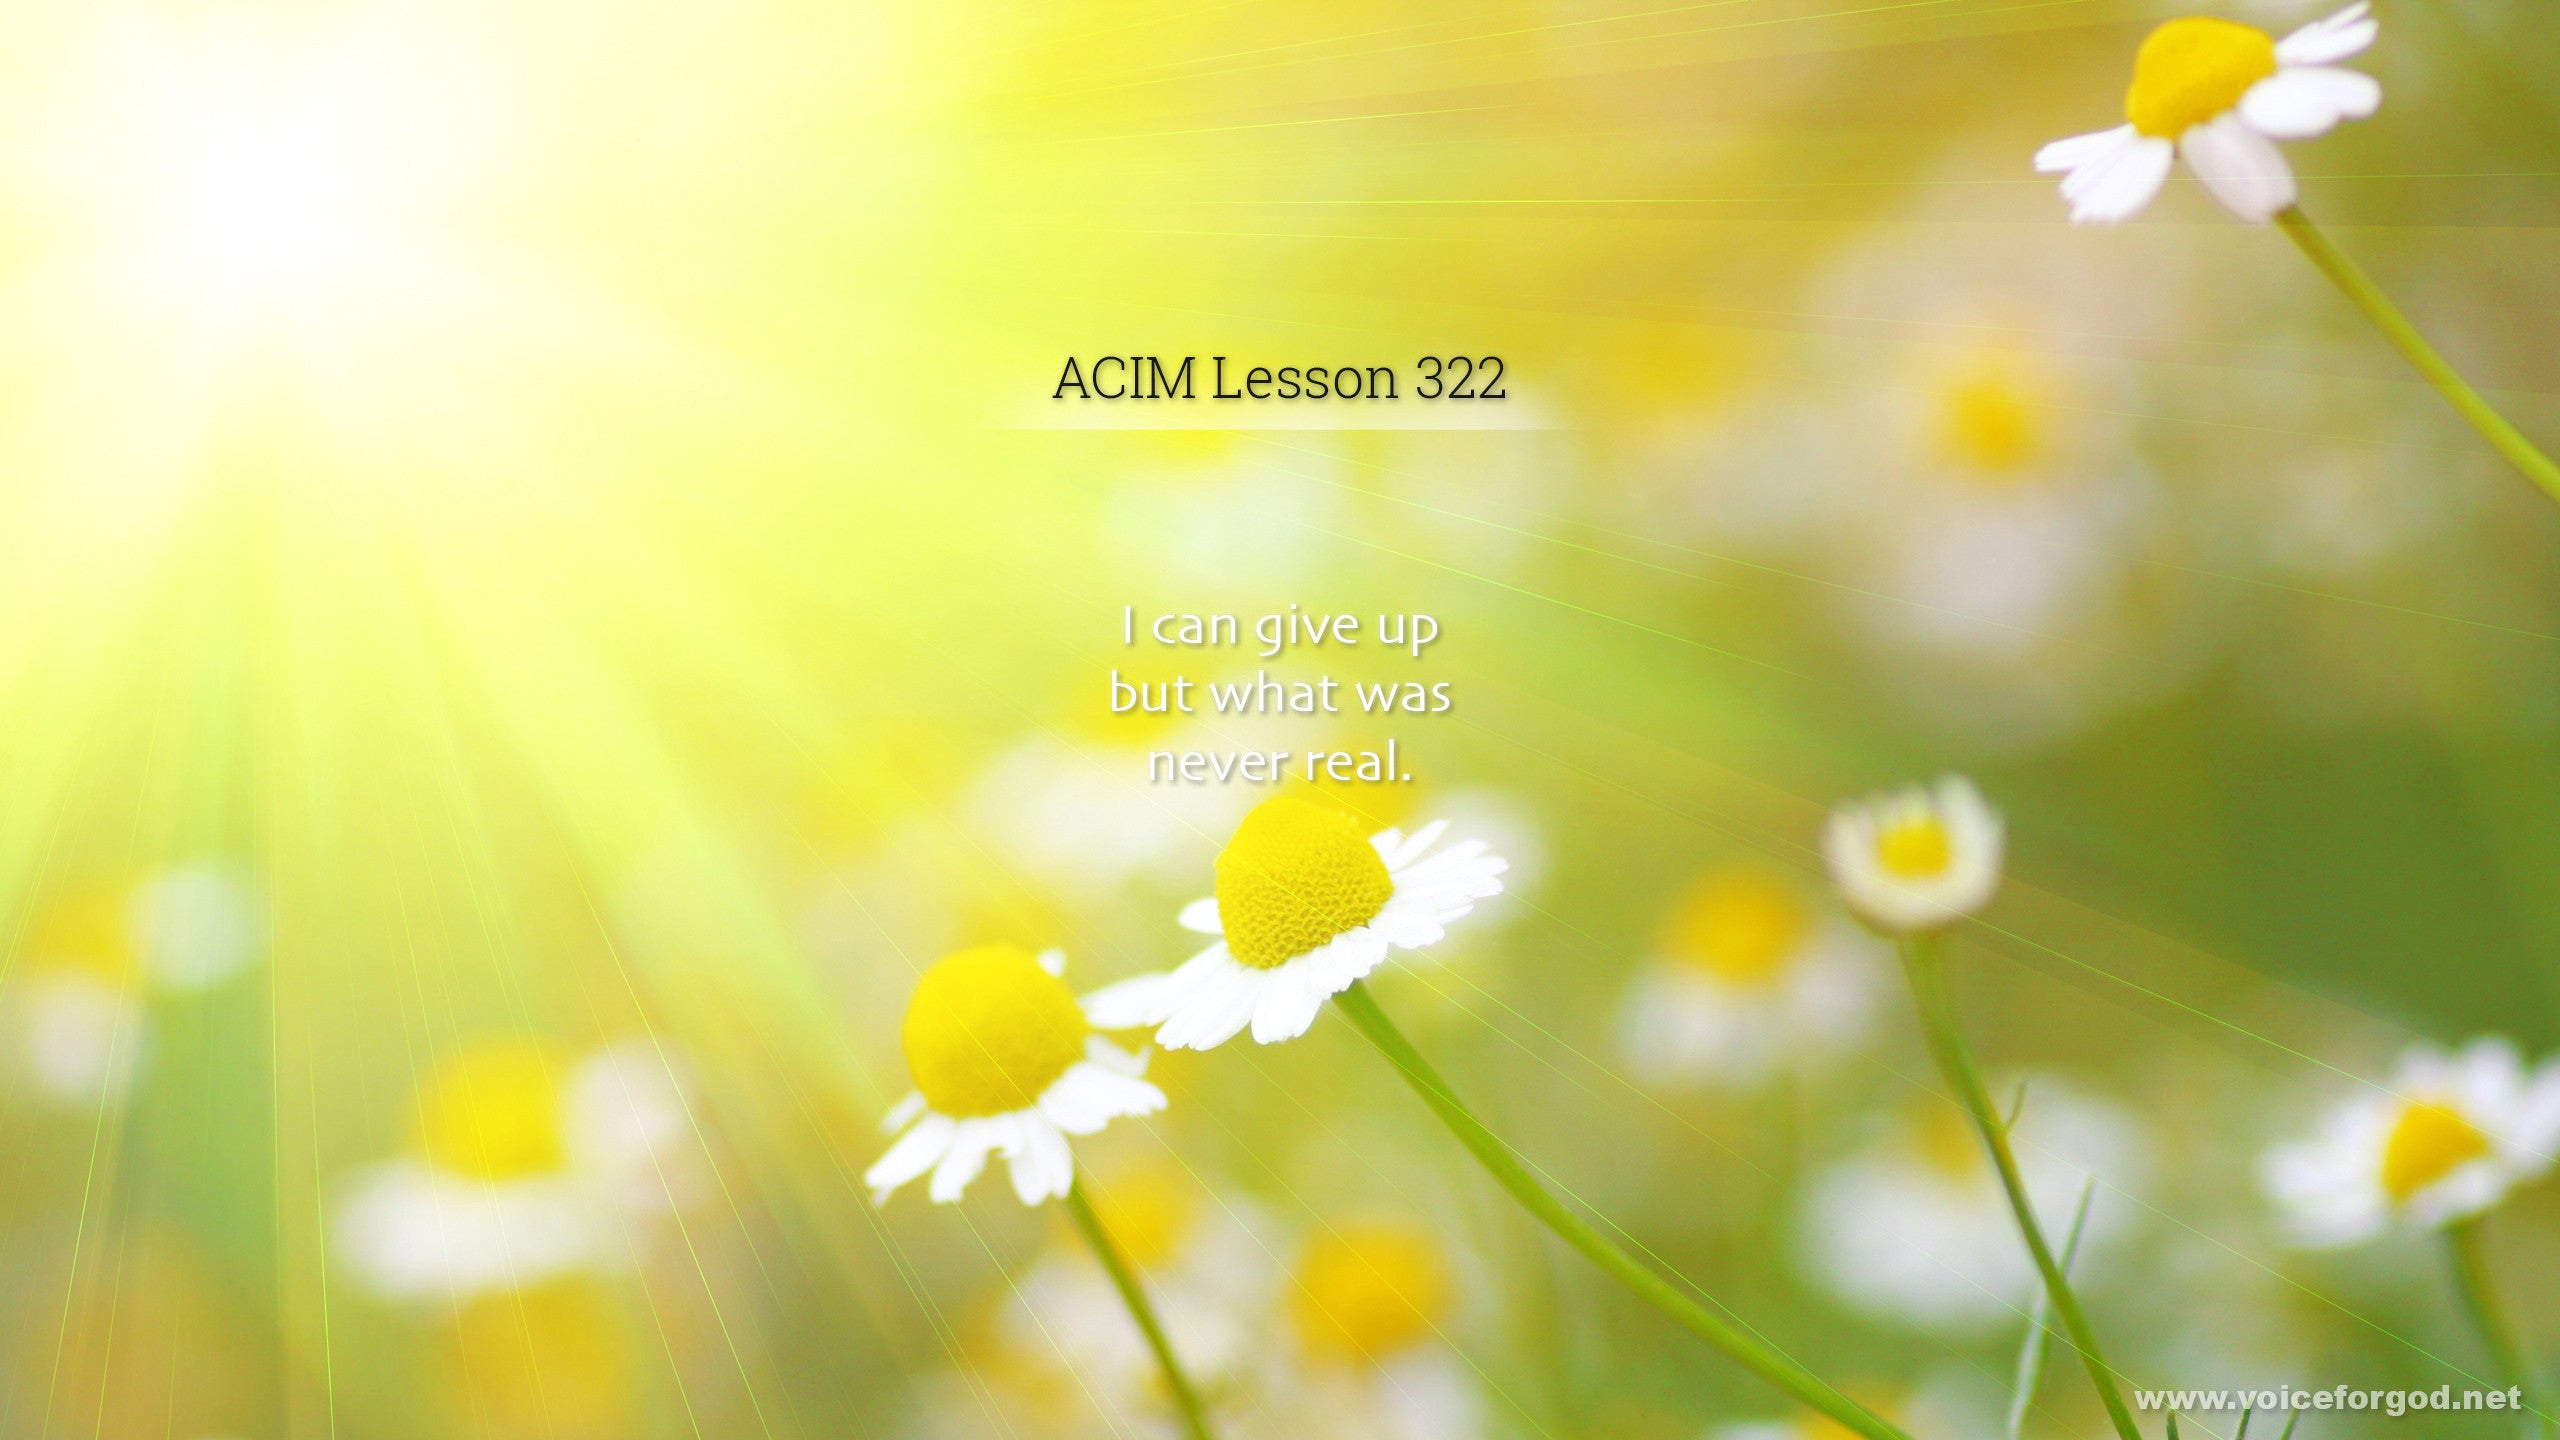 ACIM Lesson 322 - A Course in Miracles Workbook Lesson 322